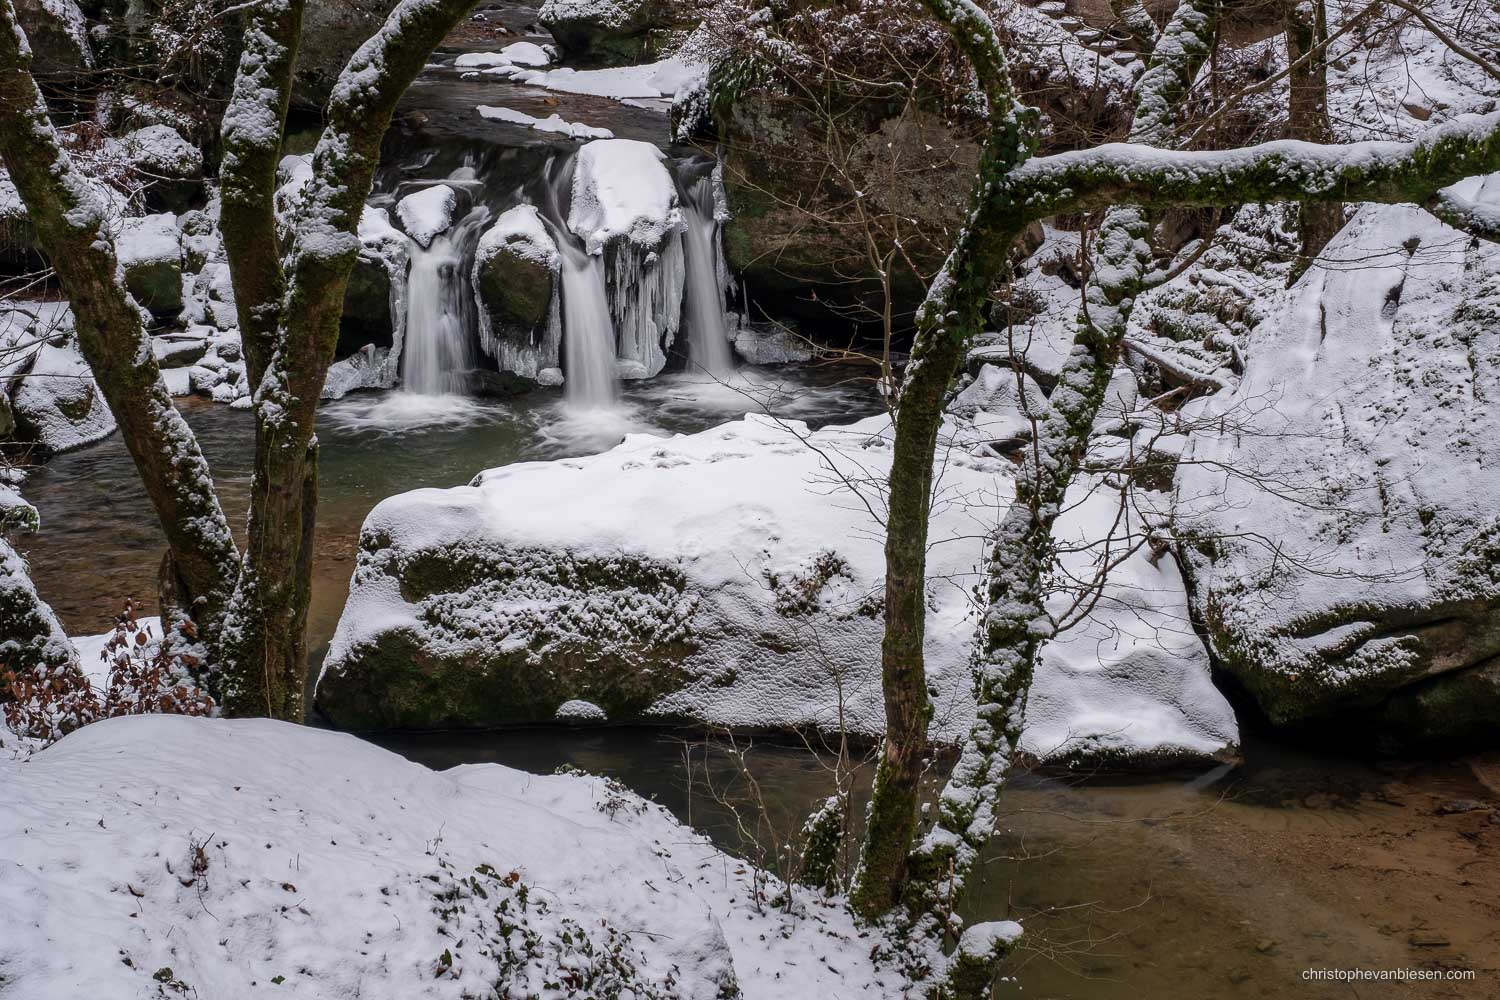 Visit the Mullerthal - Luxembourg - A cold winter has frozen parts of the Mullerthal's Schiessentumpel waterfall in northeastern Luxembourg - Winter's Grasp